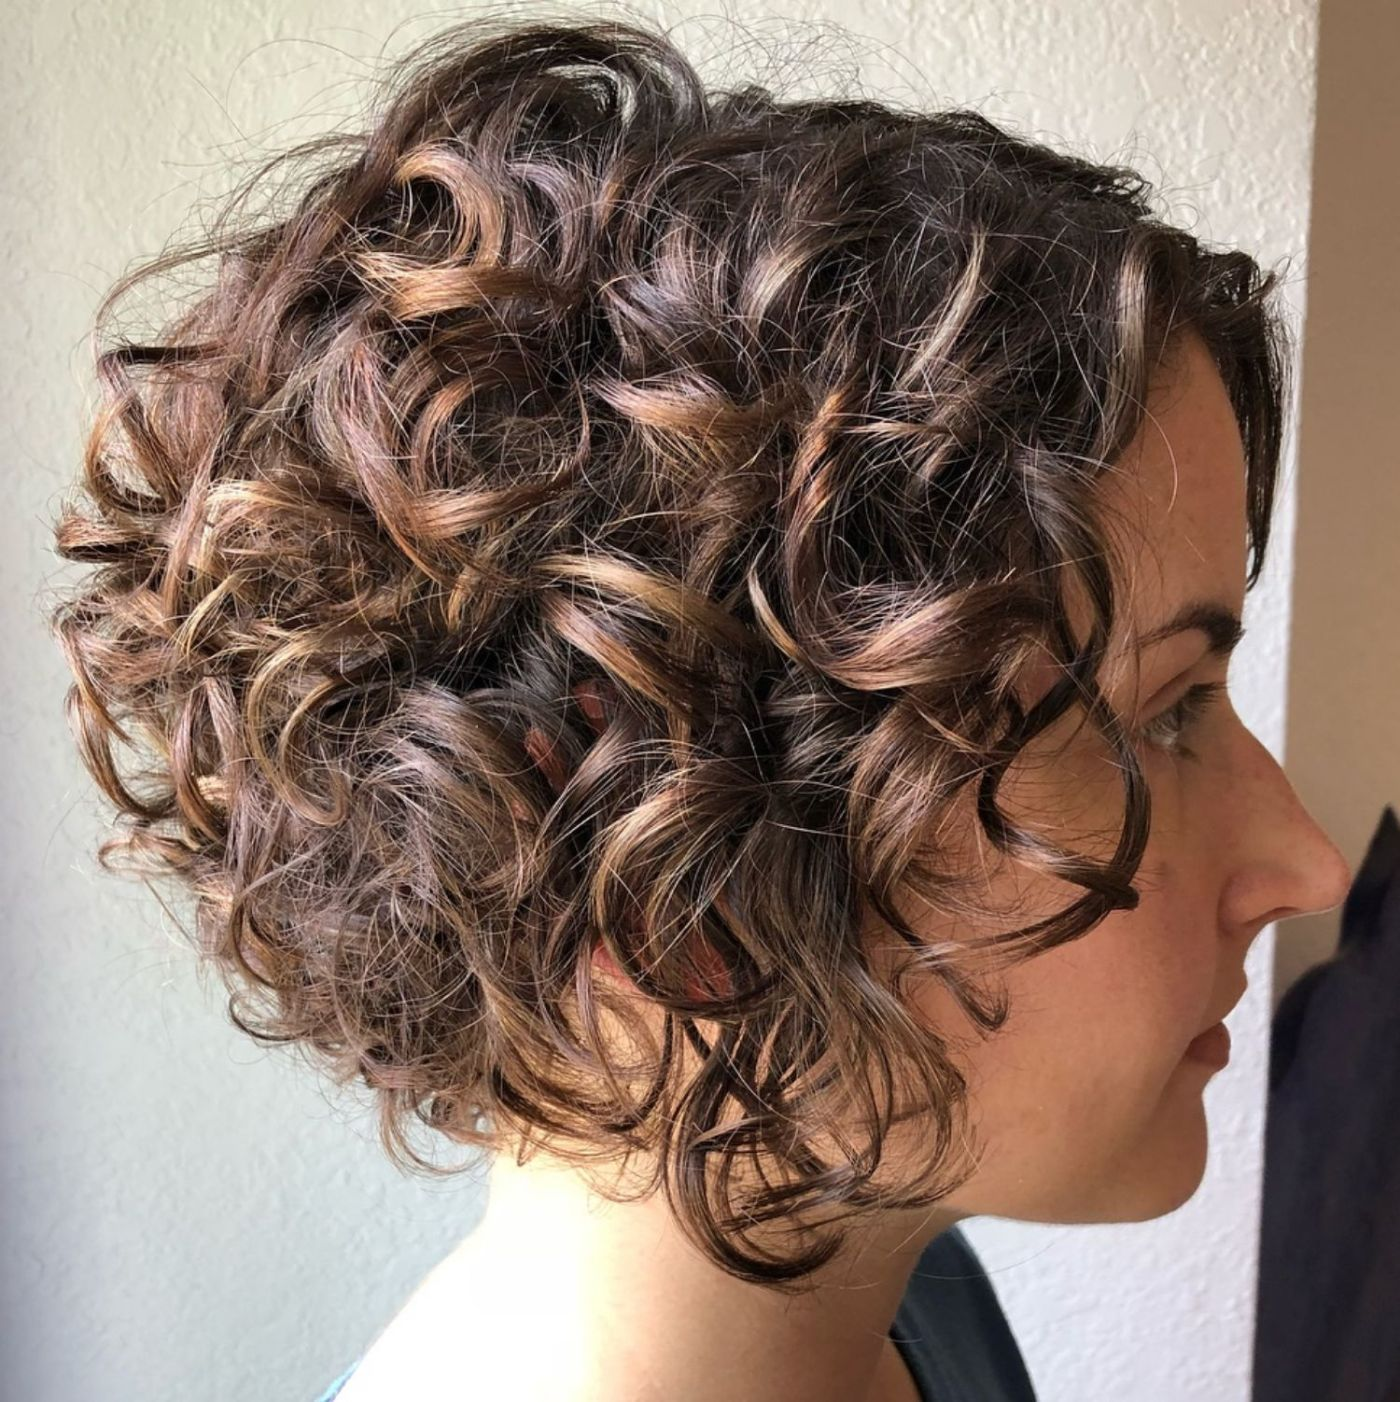 Short Curly Caramel Brown Bob Curly Hair Photos Short Wavy Hair Short Curly Bob Hairstyles